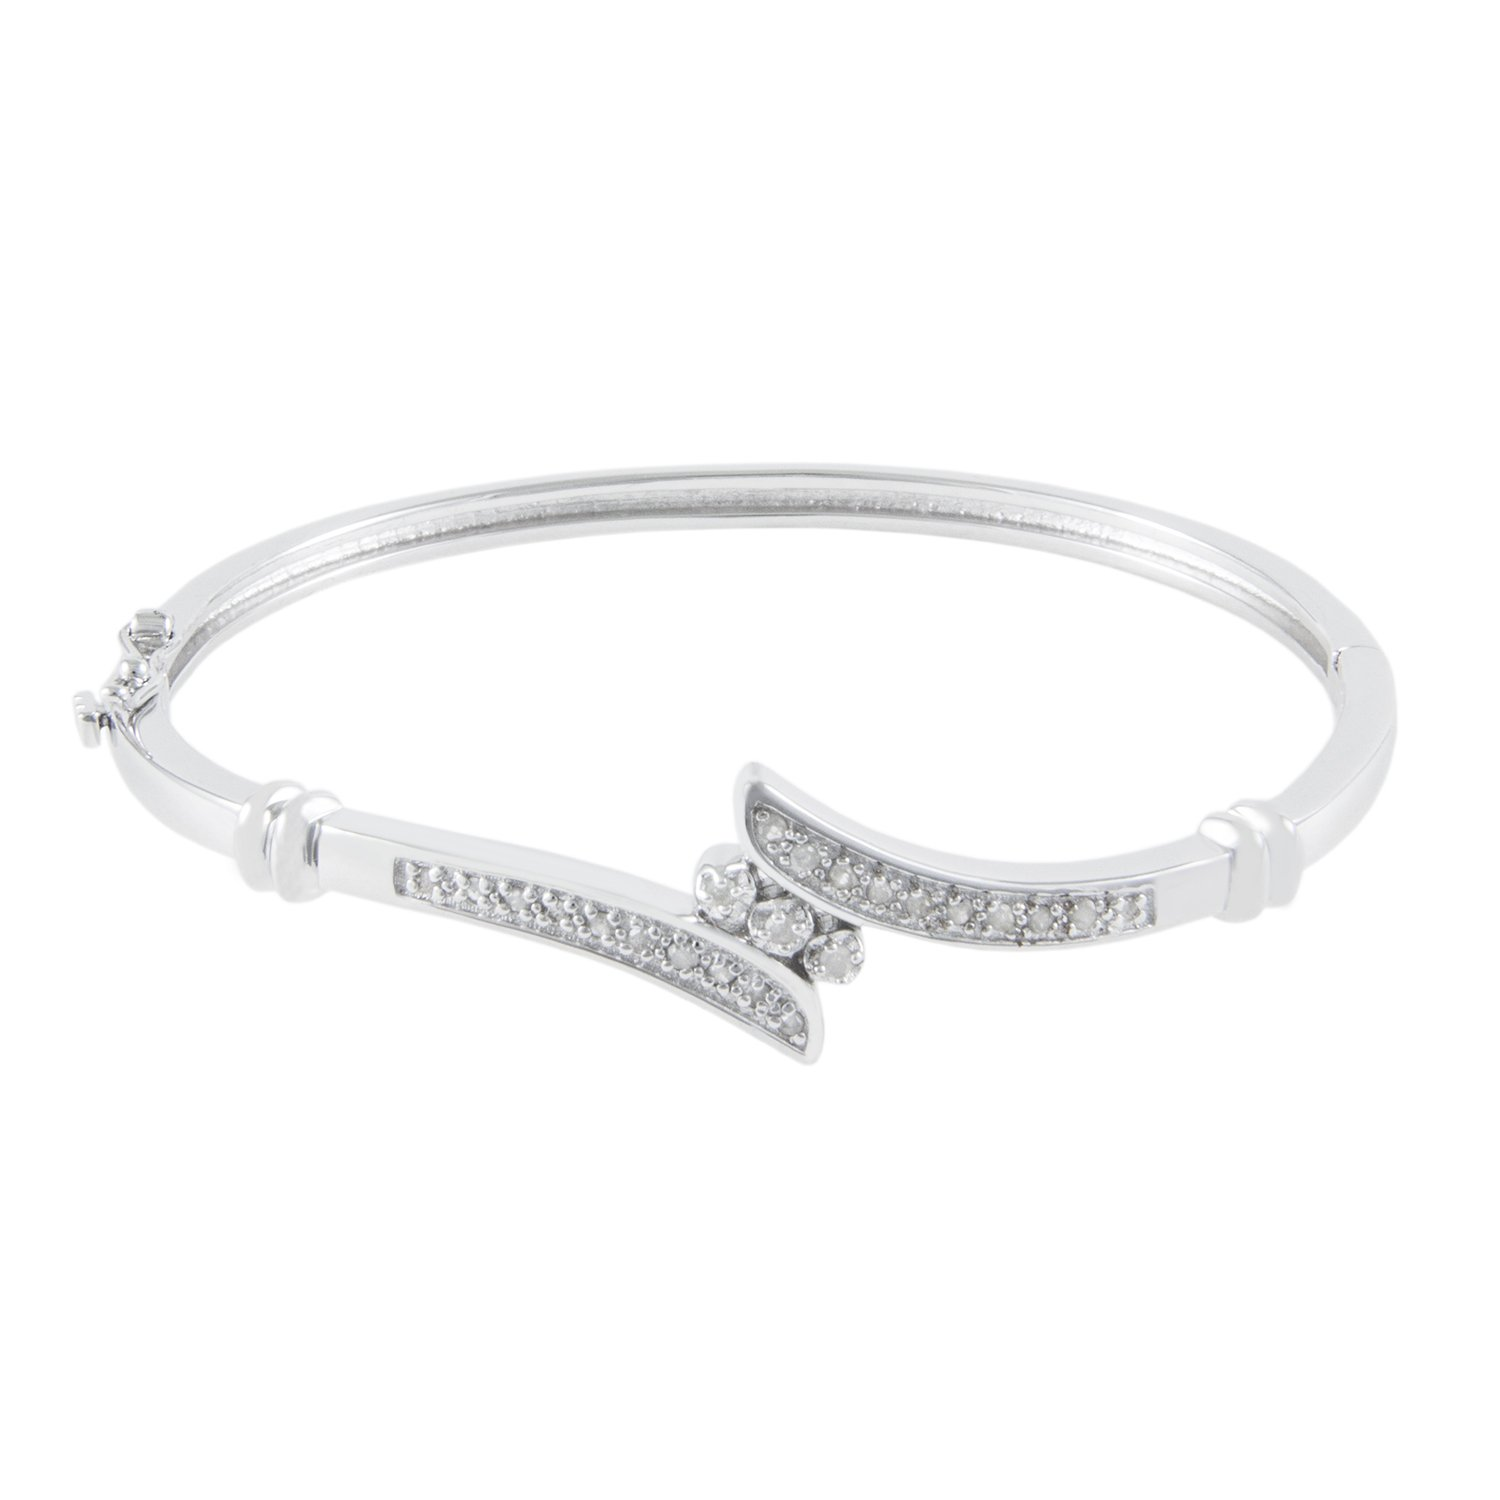 JewelExclusive Sterling Silver1/4cttw Natural Round-Cut Diamond (J-K Color, I2-I3 Clarity) Bypass Bangle Bracelet by JewelExclusive